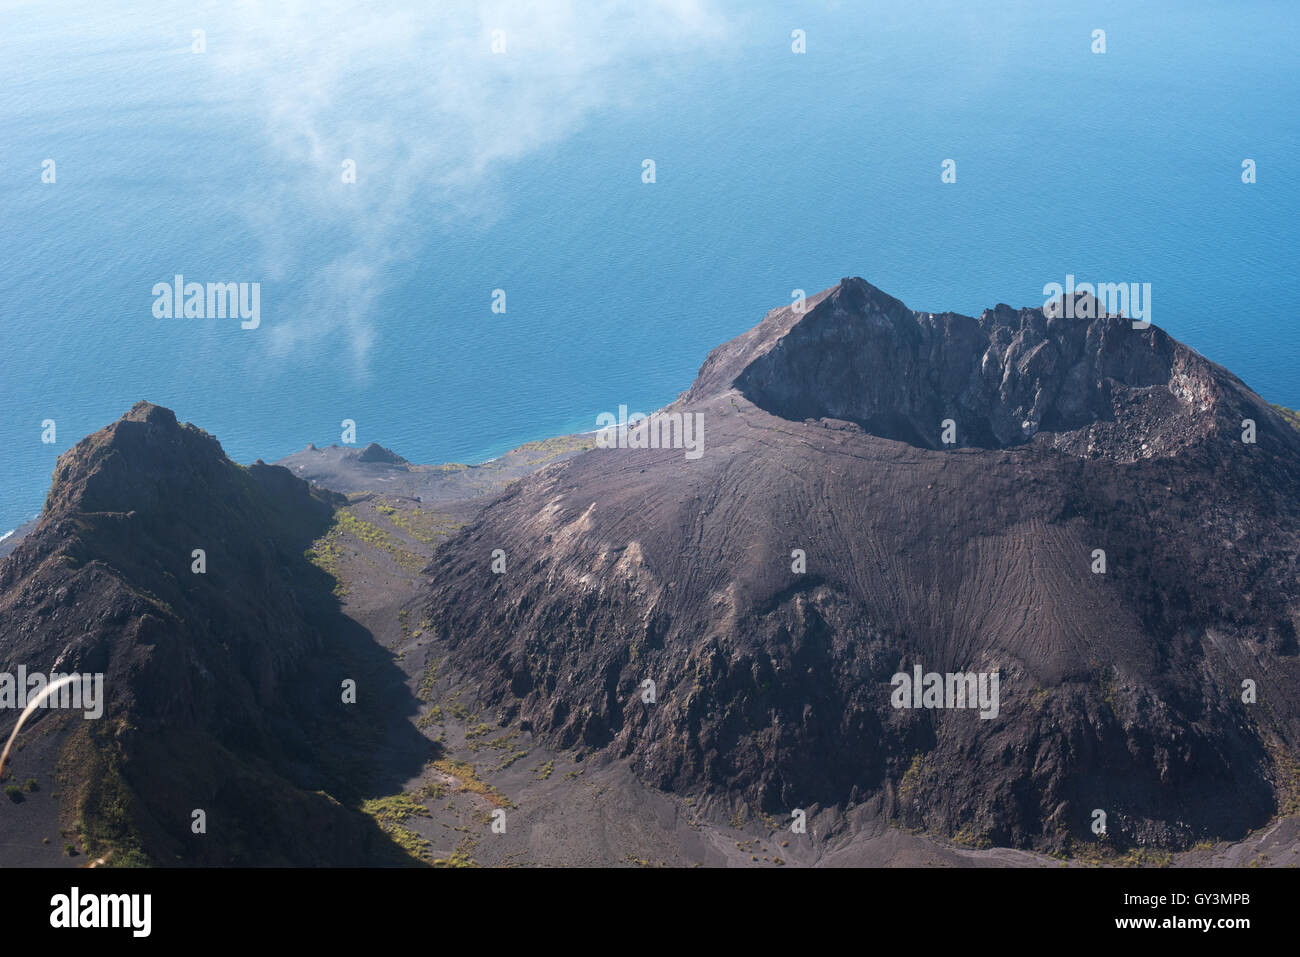 The caldera of Ile Werung volcano in Lembata Island, East Nusa Tenggara, Indonesia. - Stock Image